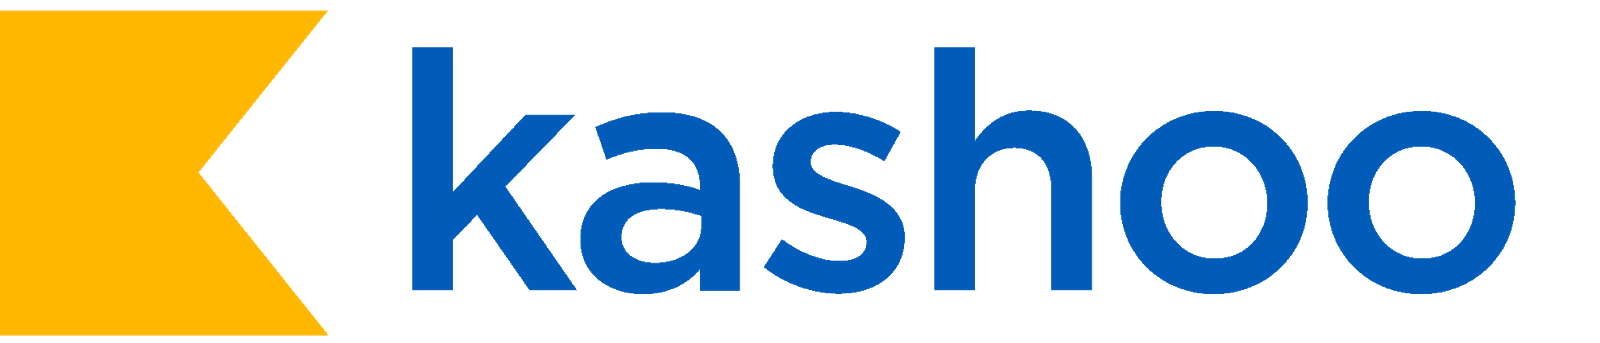 kashoo: best accounting software tools for businesses in Singapore